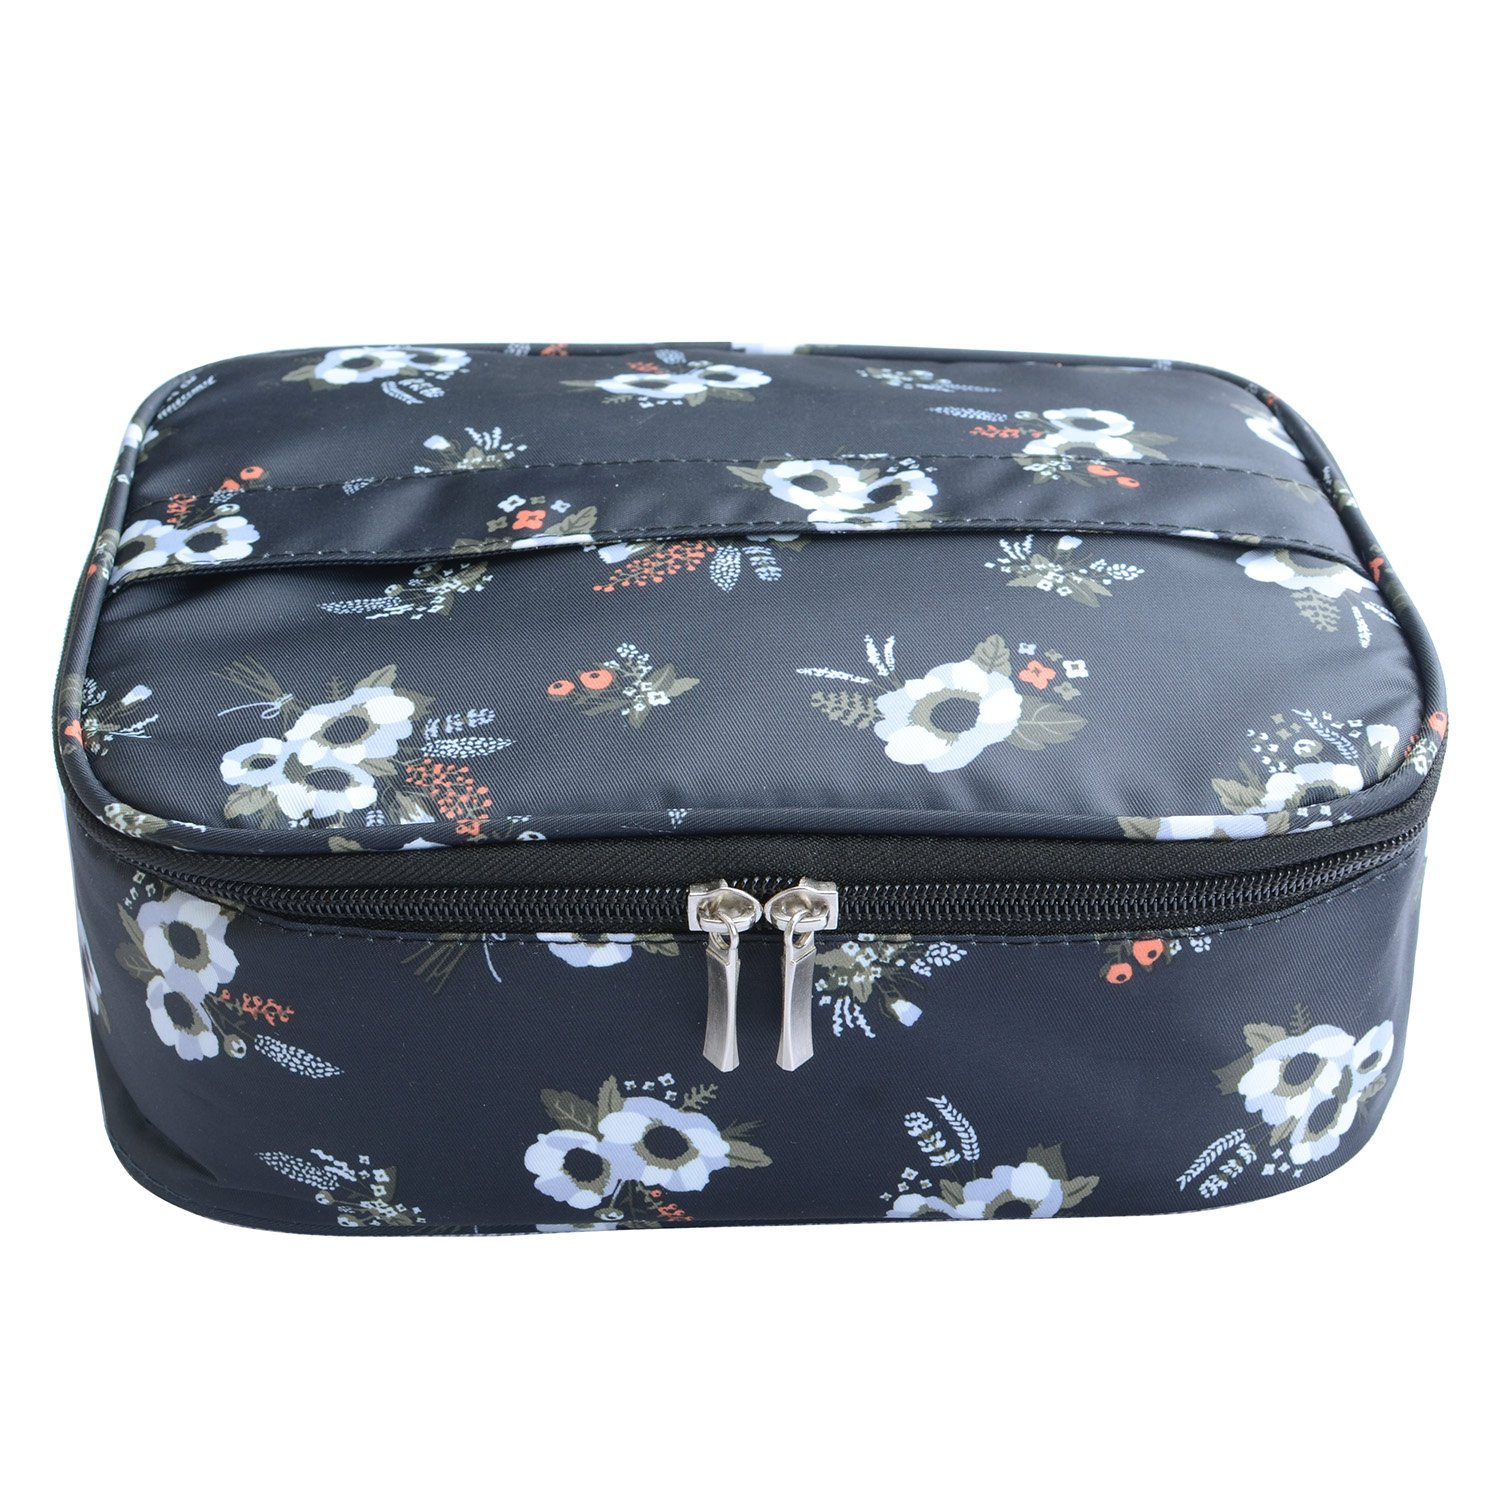 Portable Travel Makeup Cosmetic Bag Organizer Multifunction Case for Women (Color2) ¡